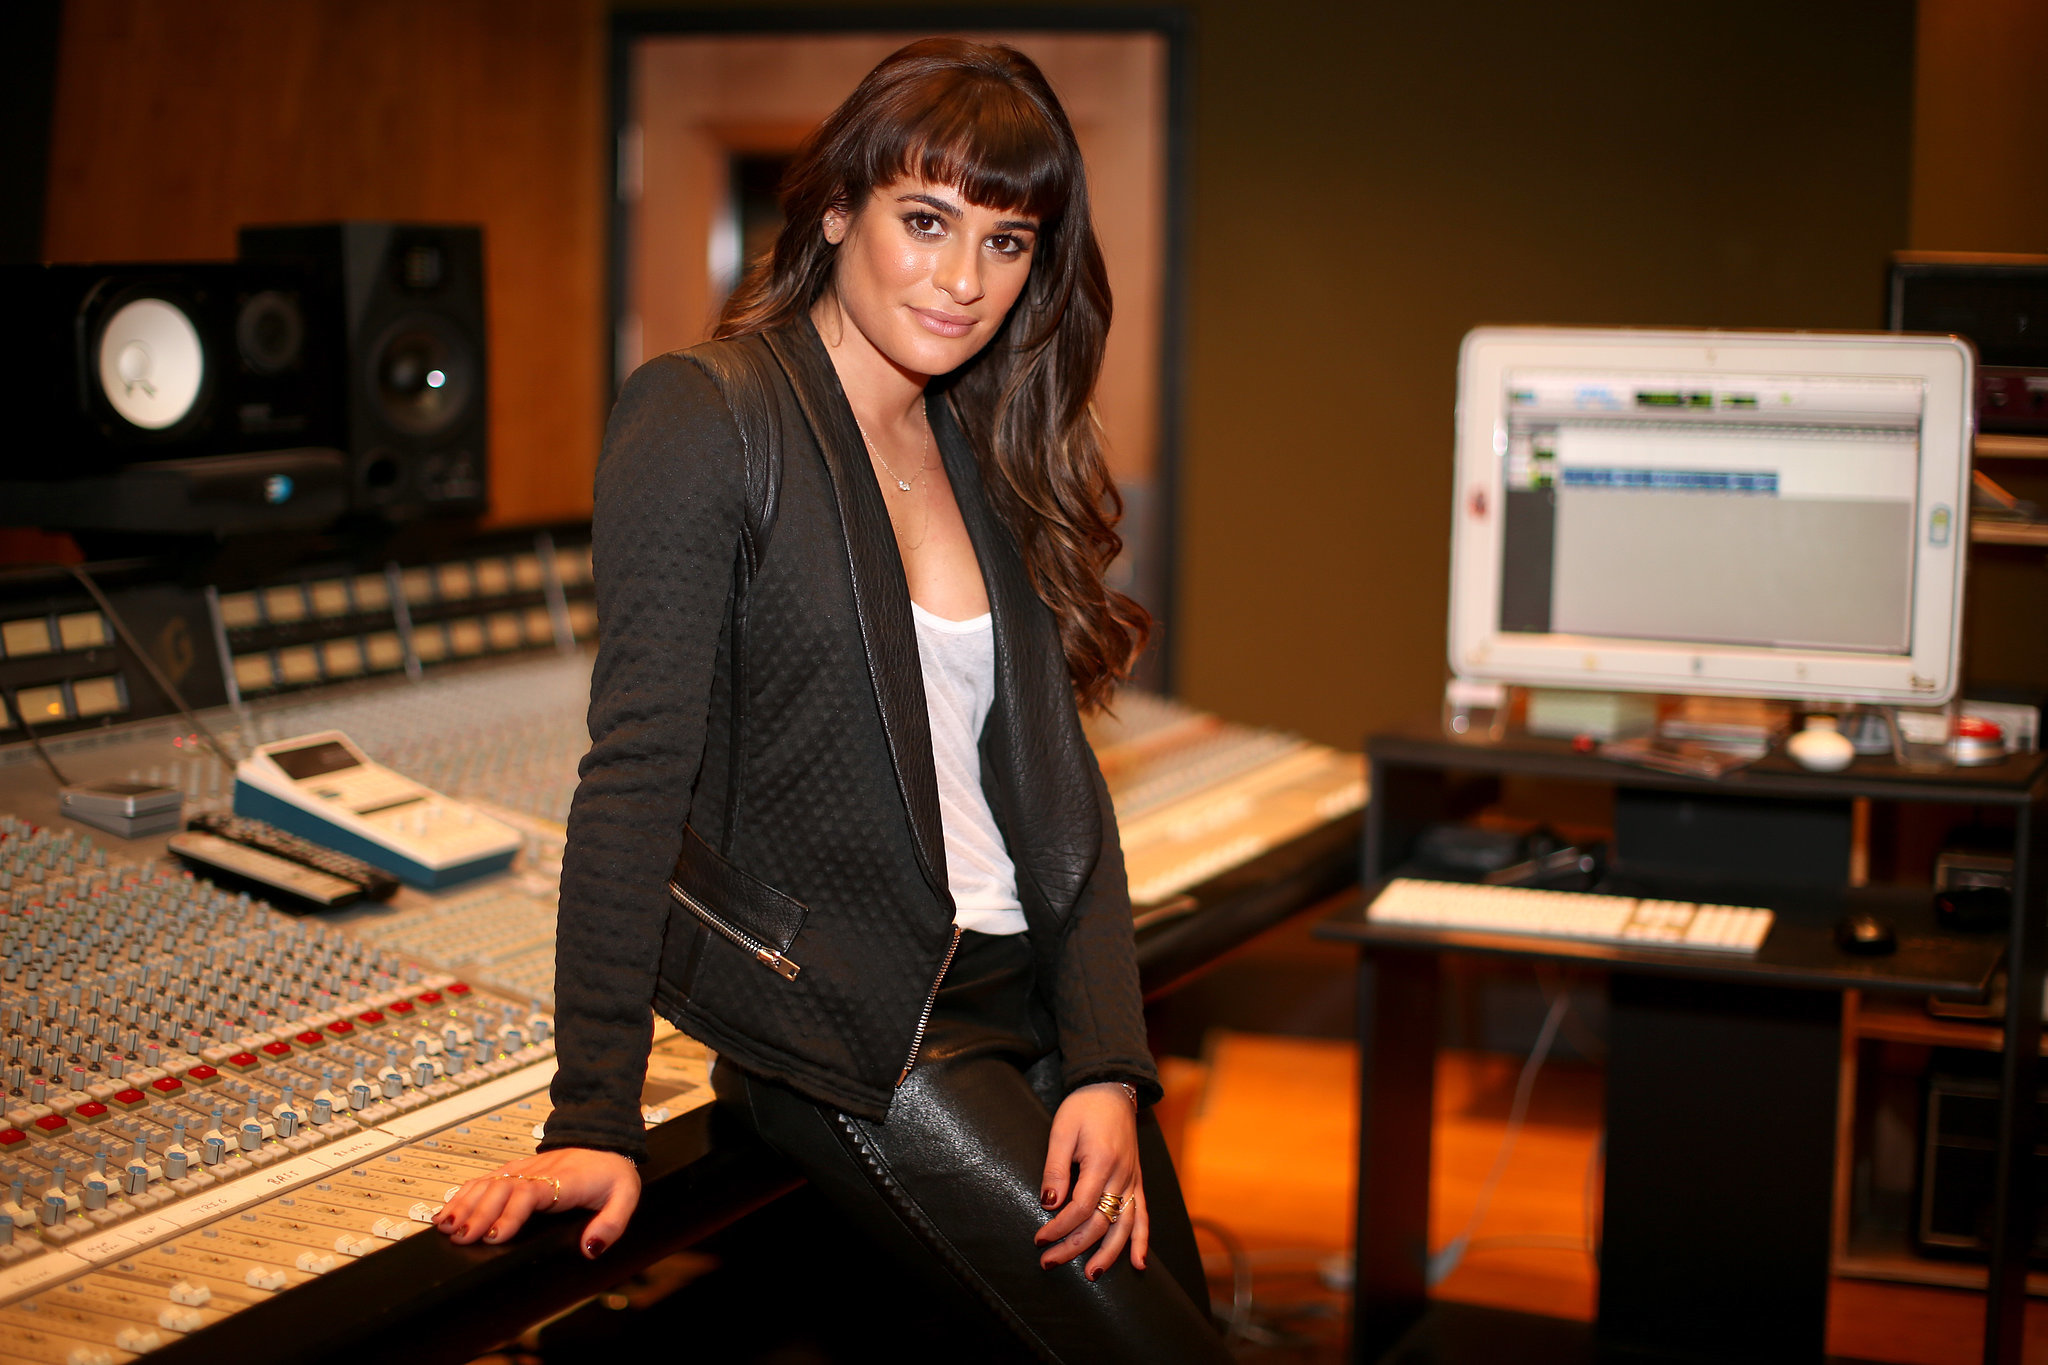 Lea posed for a snap on the recording studio control board.